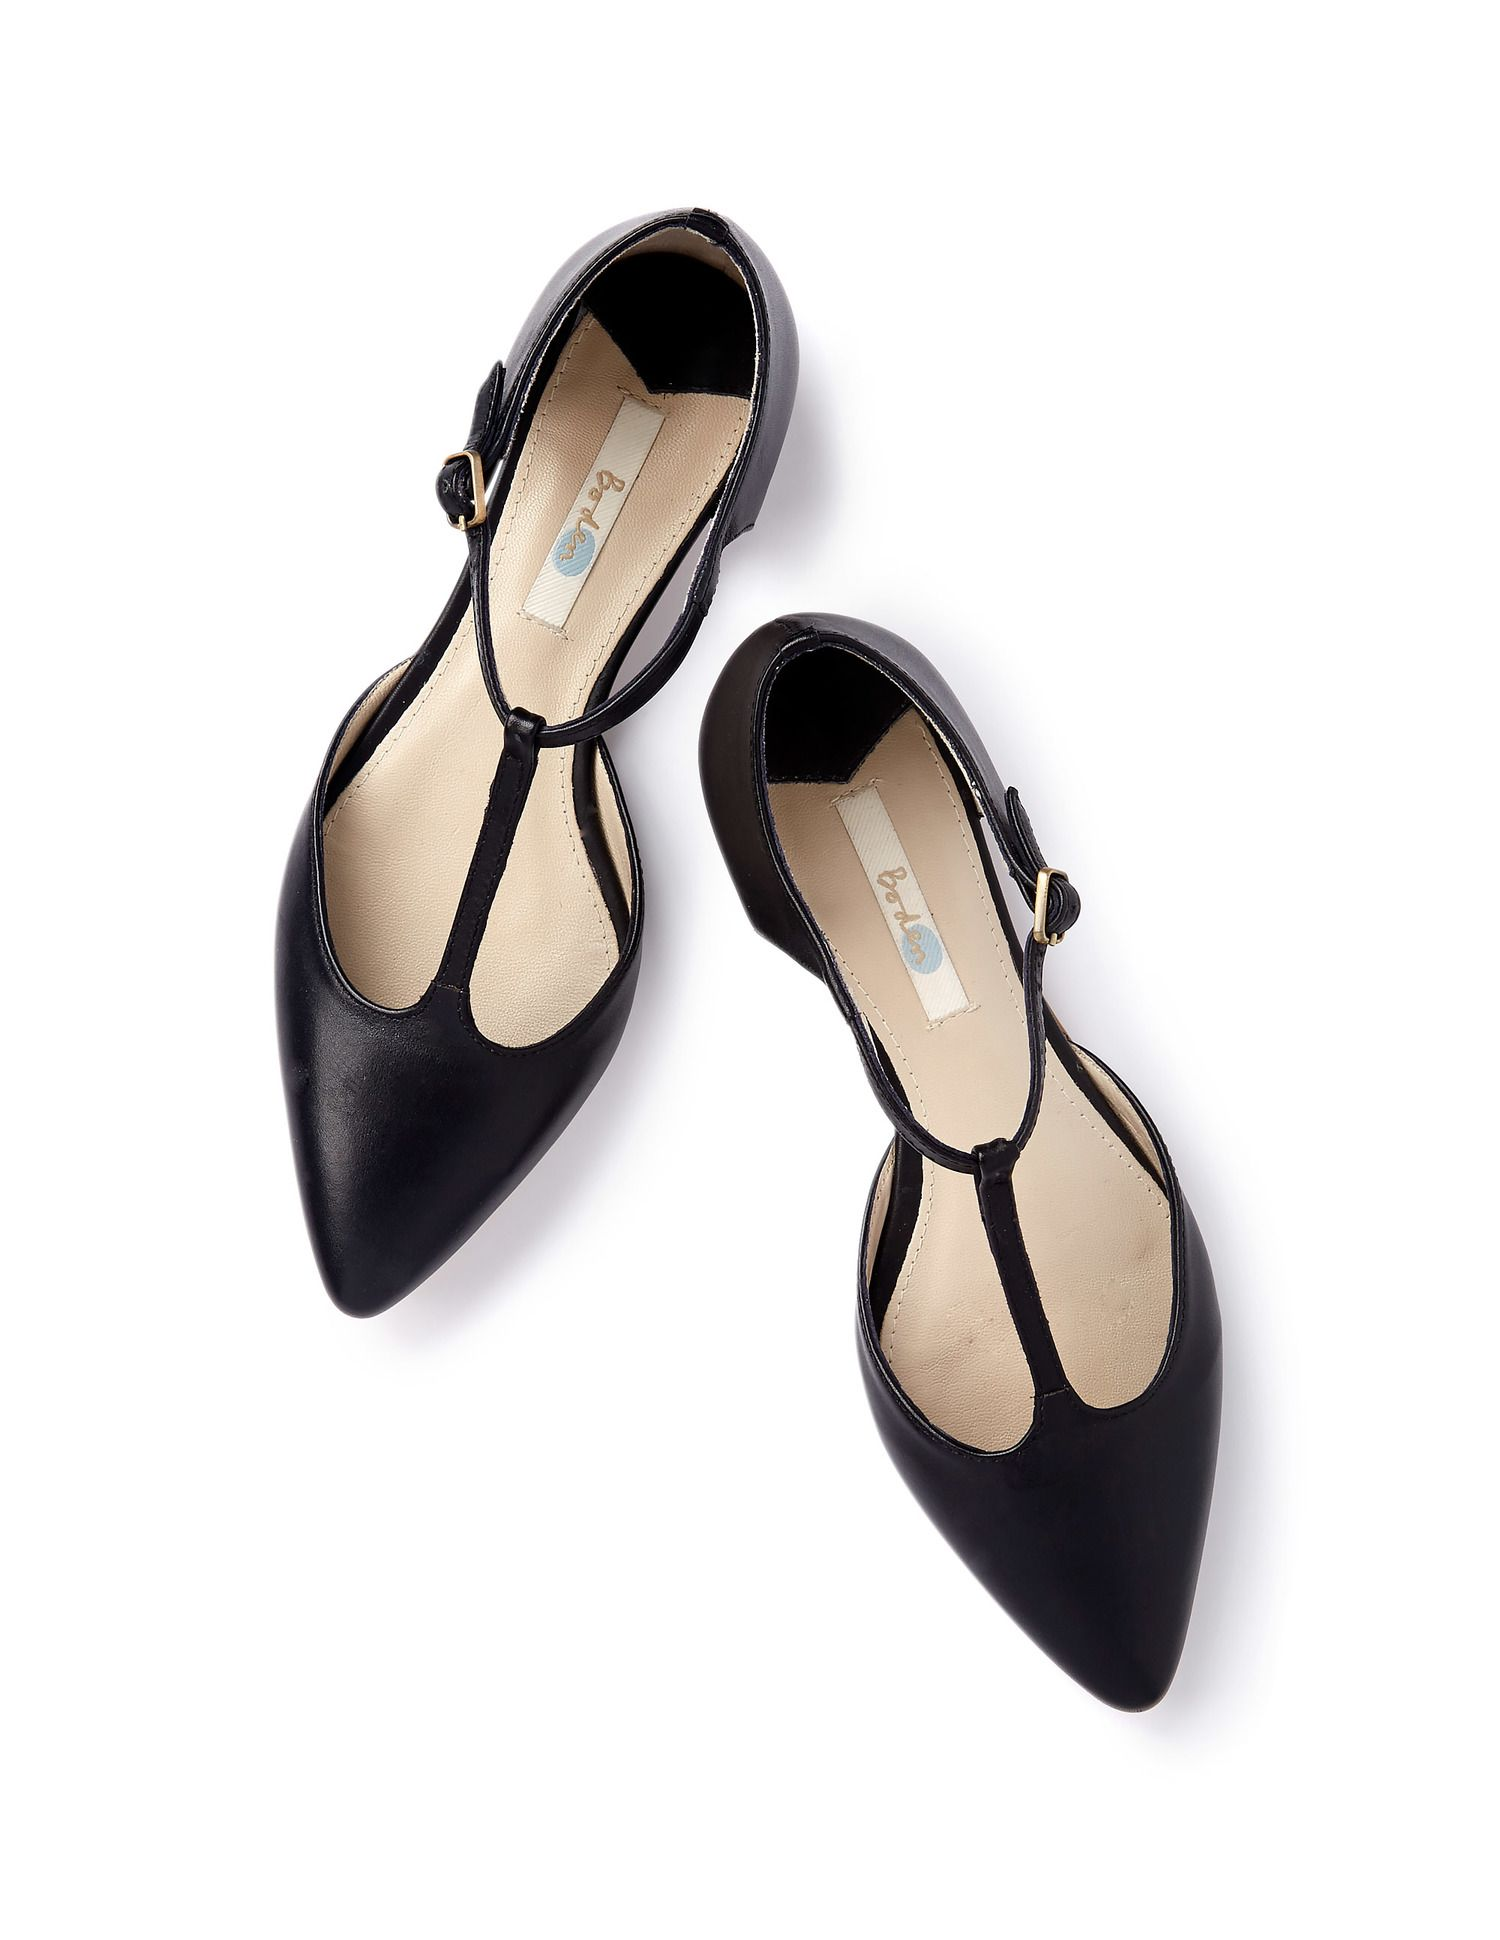 587f4846abfd Boden T-Bar Flats. #SS15 | My Style | Shoe boots, Shoes, Flats